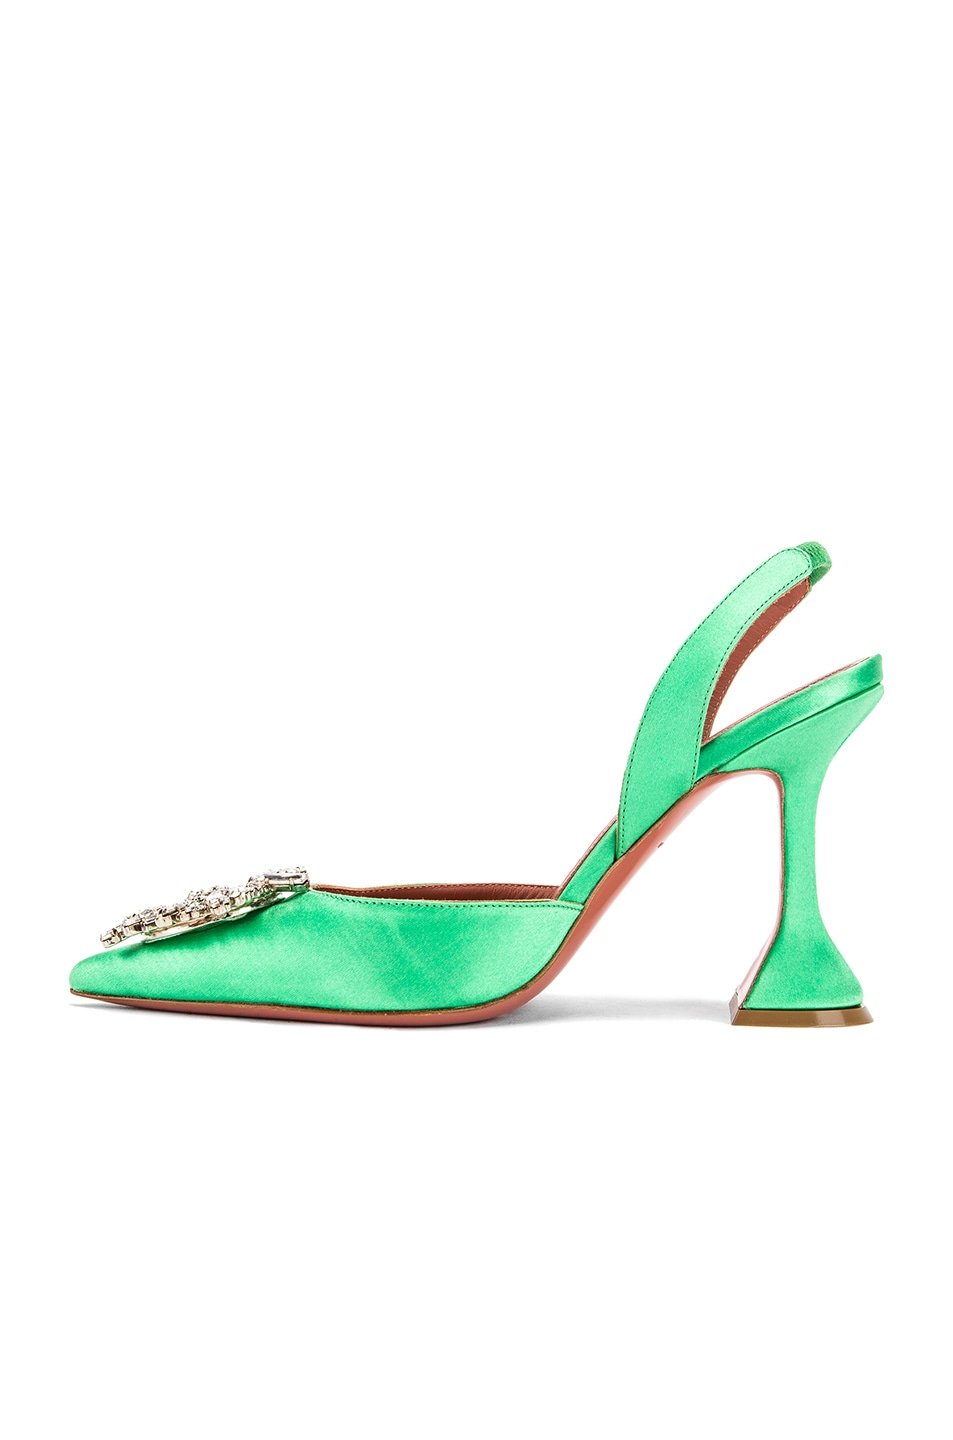 Image 5 of AMINA MUADDI Begum Satin Slingback in Aqua Green